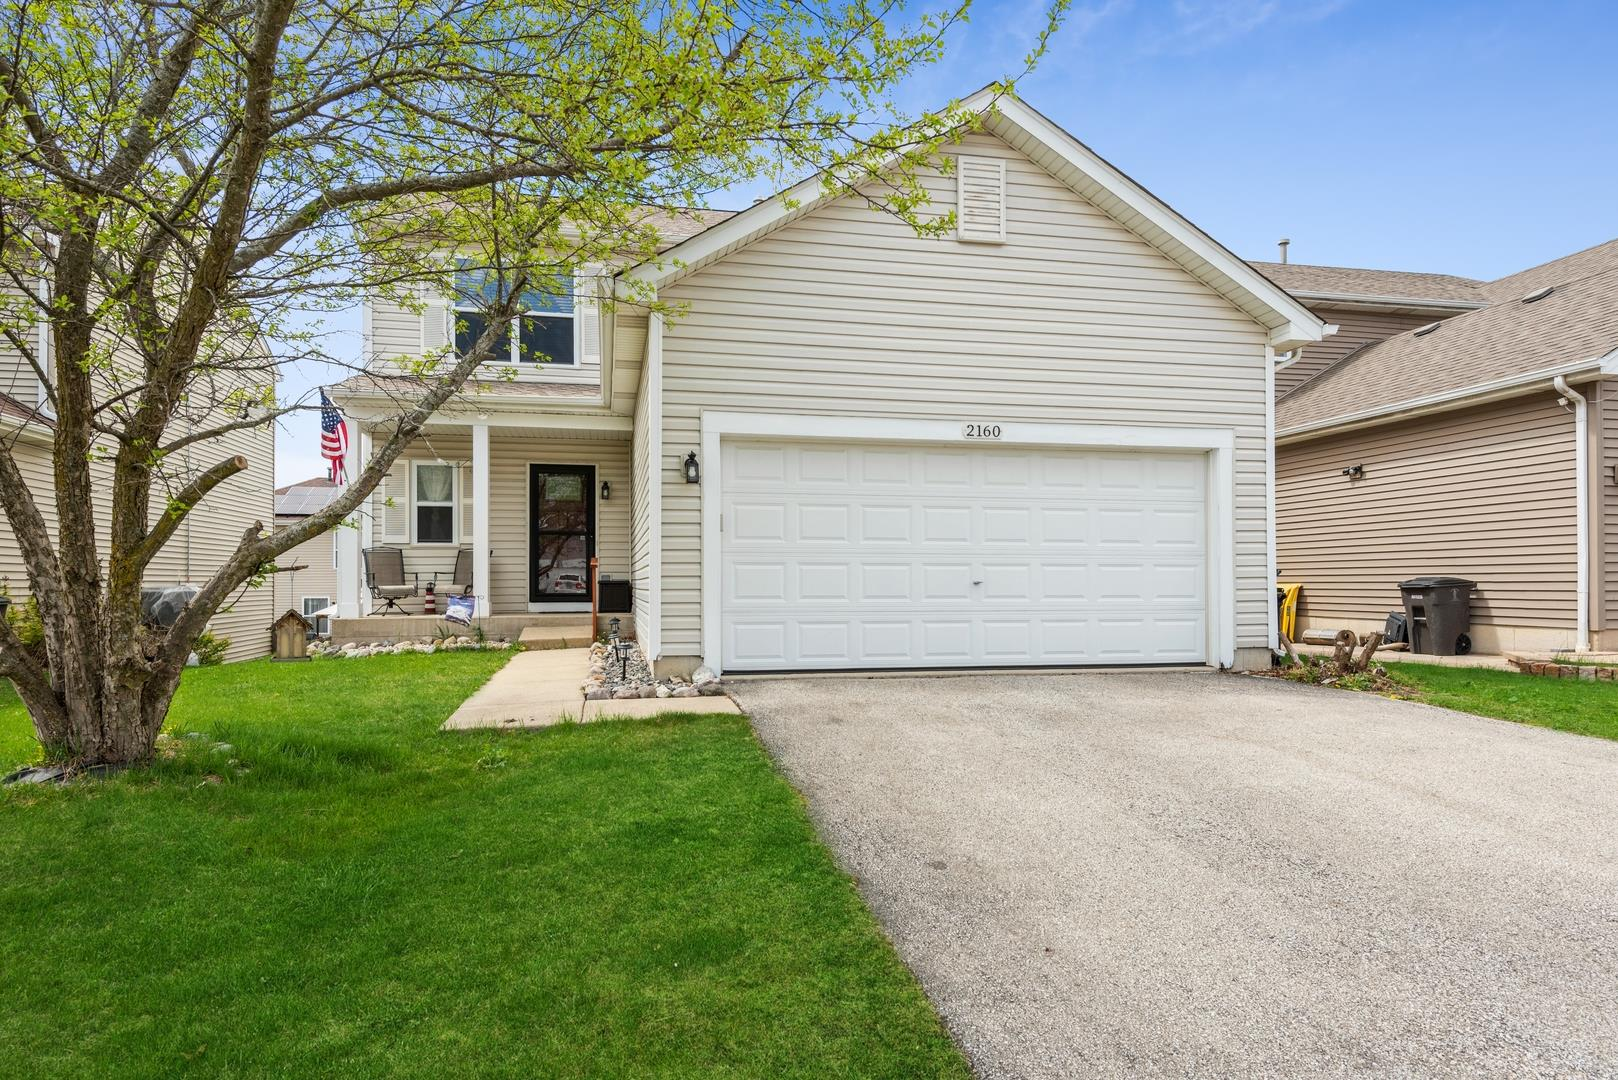 2160 N Arapahoe Trail, Round Lake Heights, IL 60073 - #: 11054602